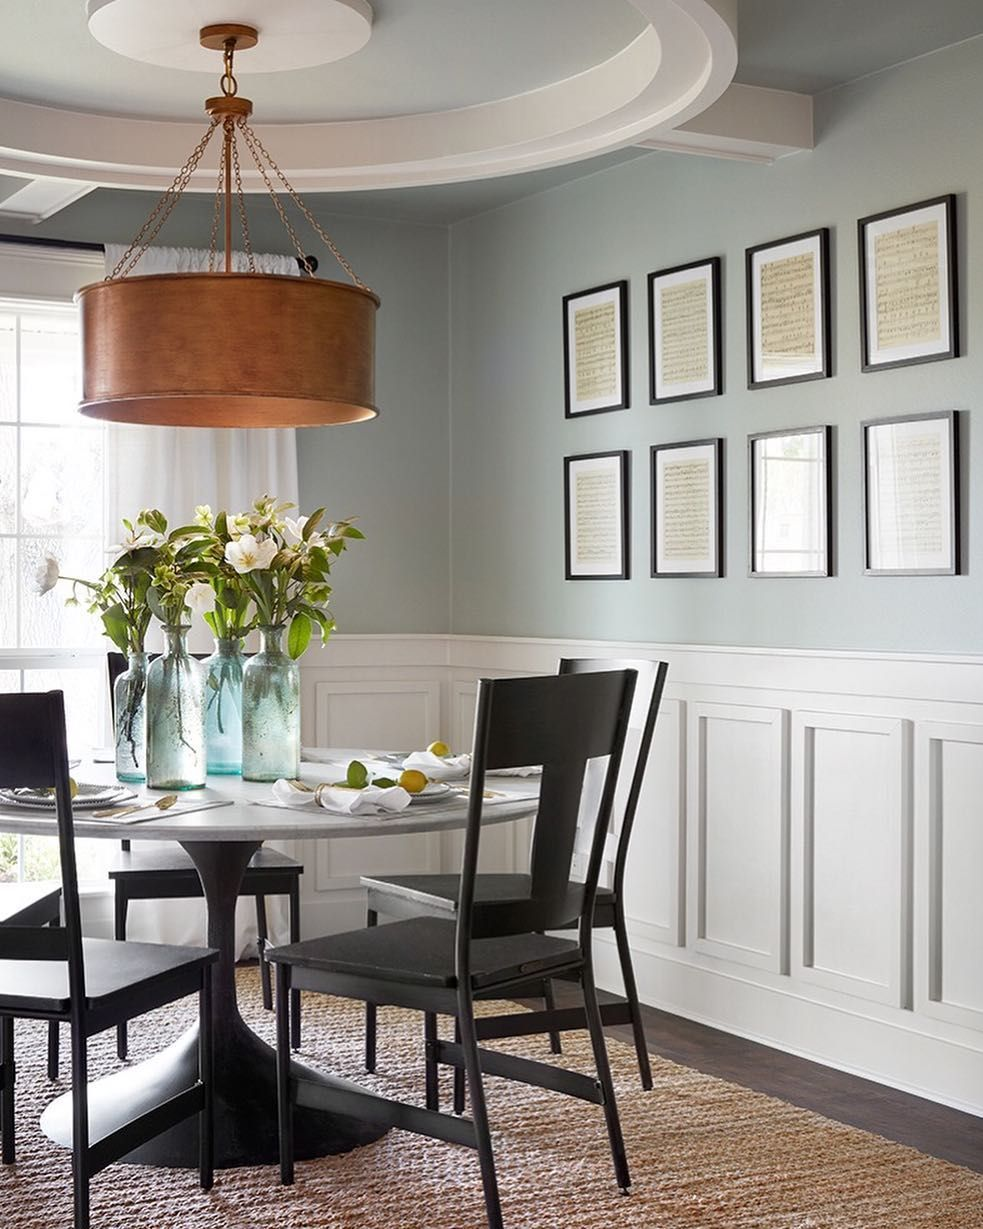 10 Exceptional Ideas Wainscoting Fireplace Wall Wainscoting Bathroom Corner Tall Wainscoting Dining Room Wainscoting Fixer Upper Dining Room Green Dining Room